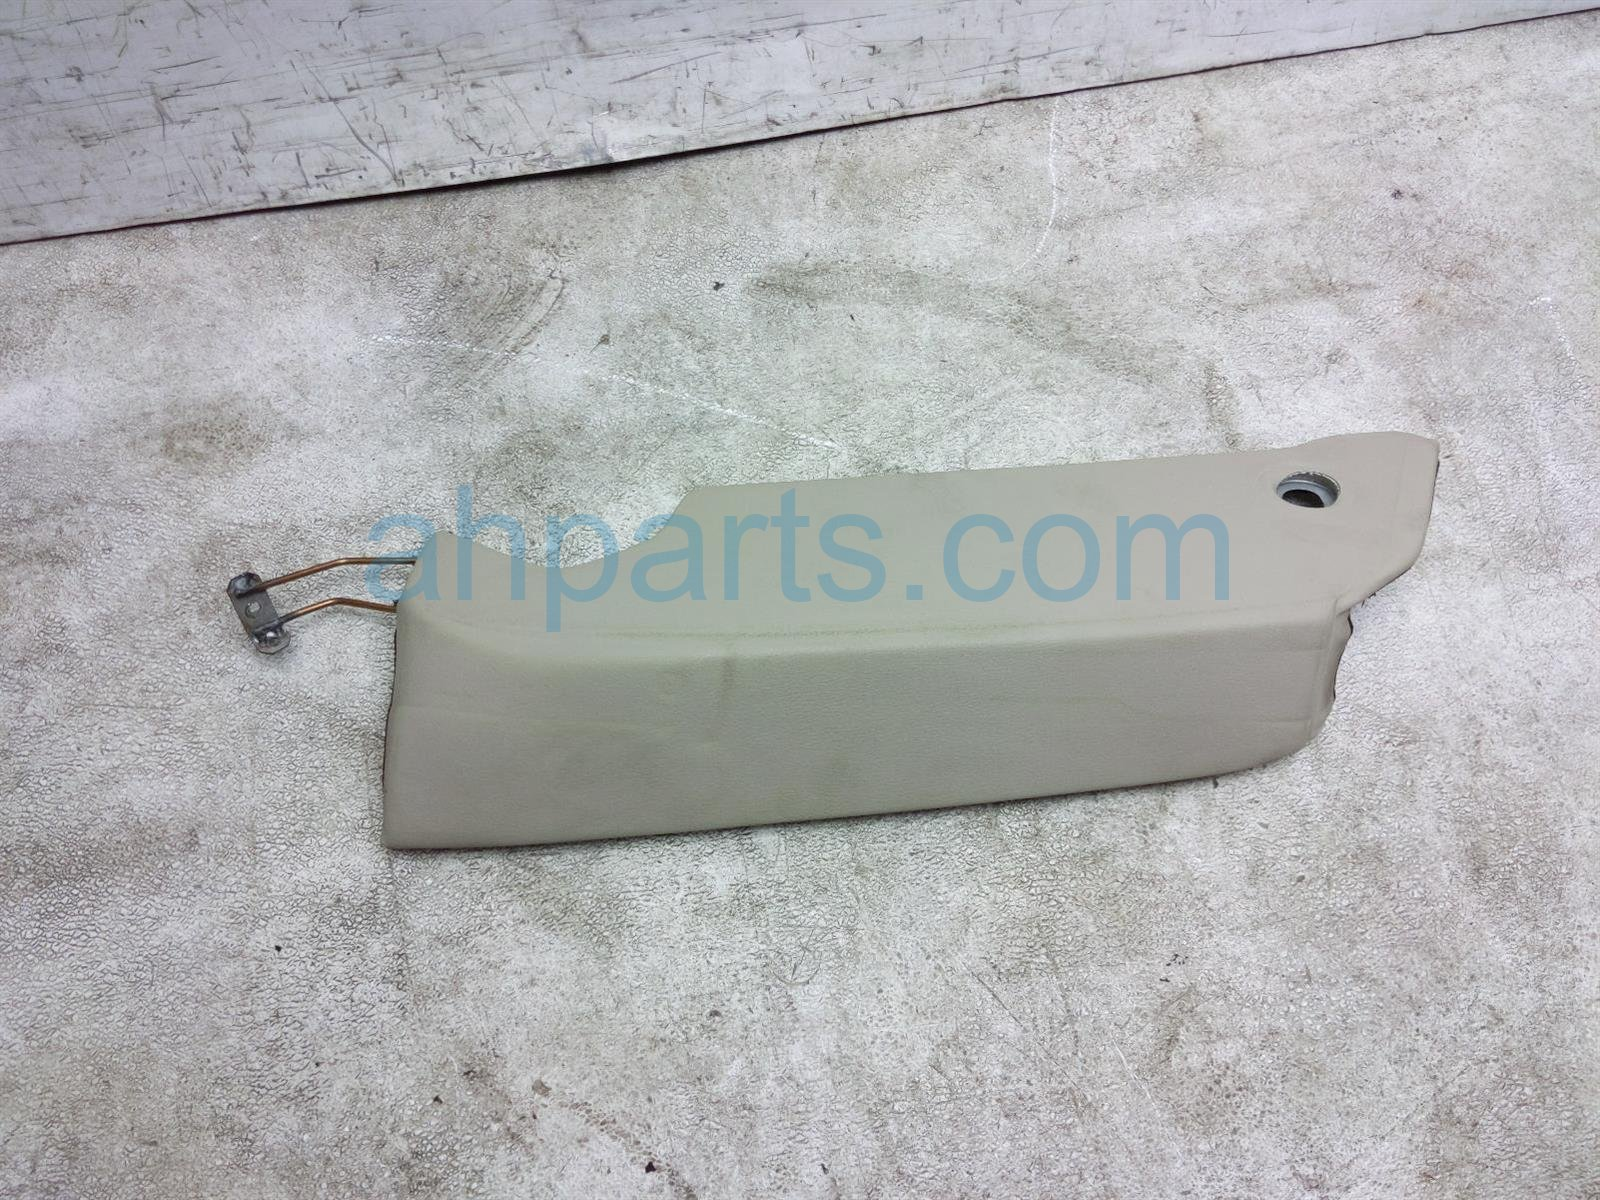 2011 Audi A6 Audi Back (2nd Row) Rear Driver Seat Shoulder Cushion   Tan F0 885 703 C N18 Replacement